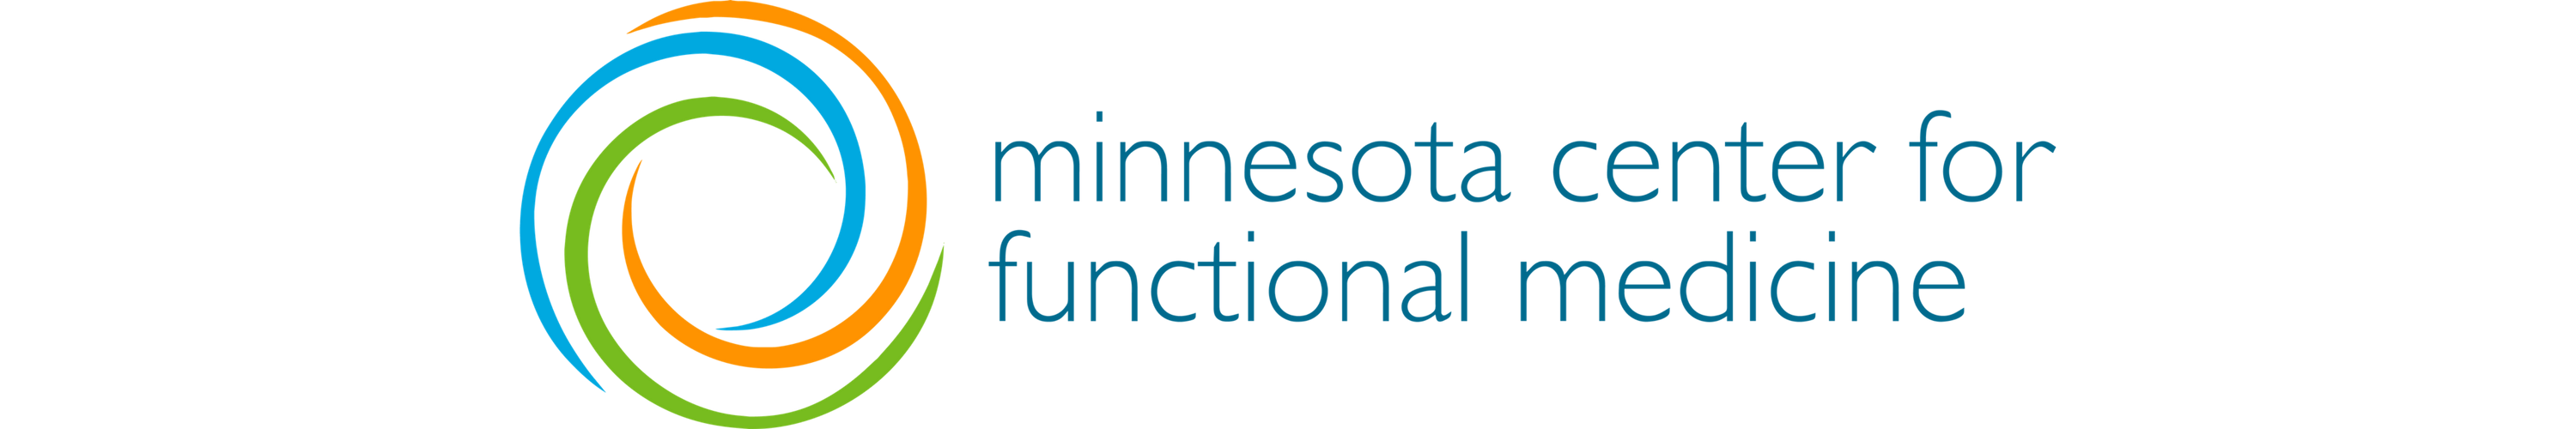 Minnesota Center for Functional Medicine